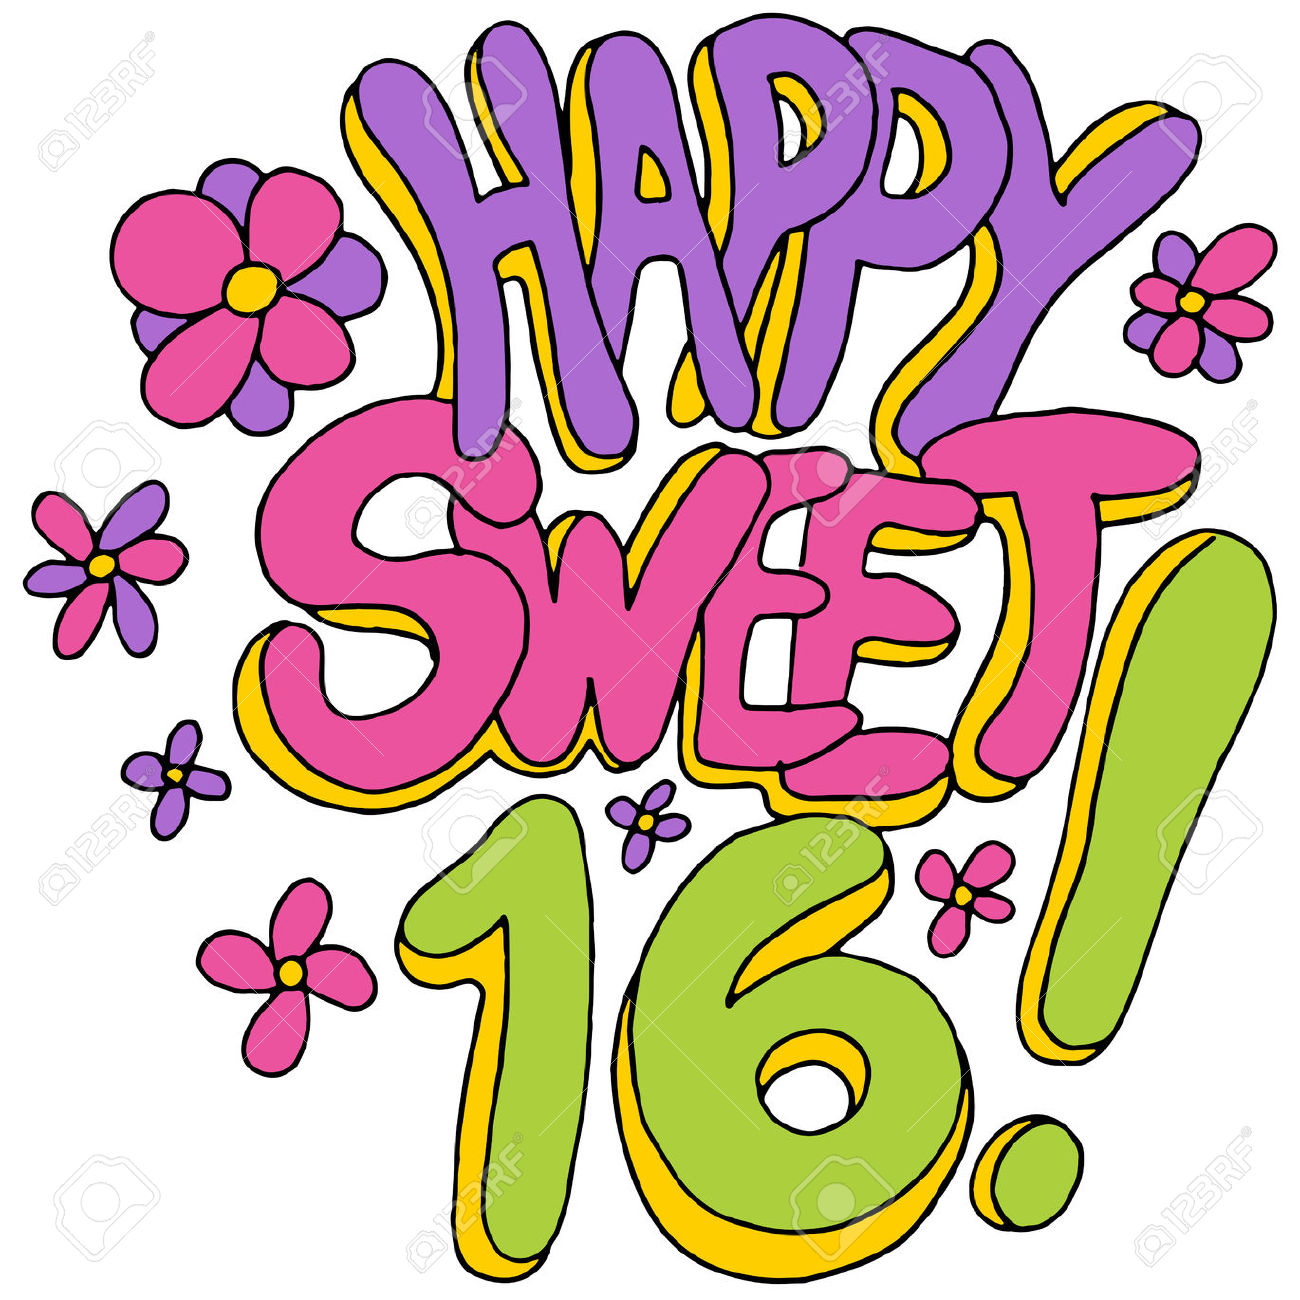 16th birthday clipart simple vector royalty free Sweet 16 Clipart | Free download best Sweet 16 Clipart on ClipArtMag.com vector royalty free